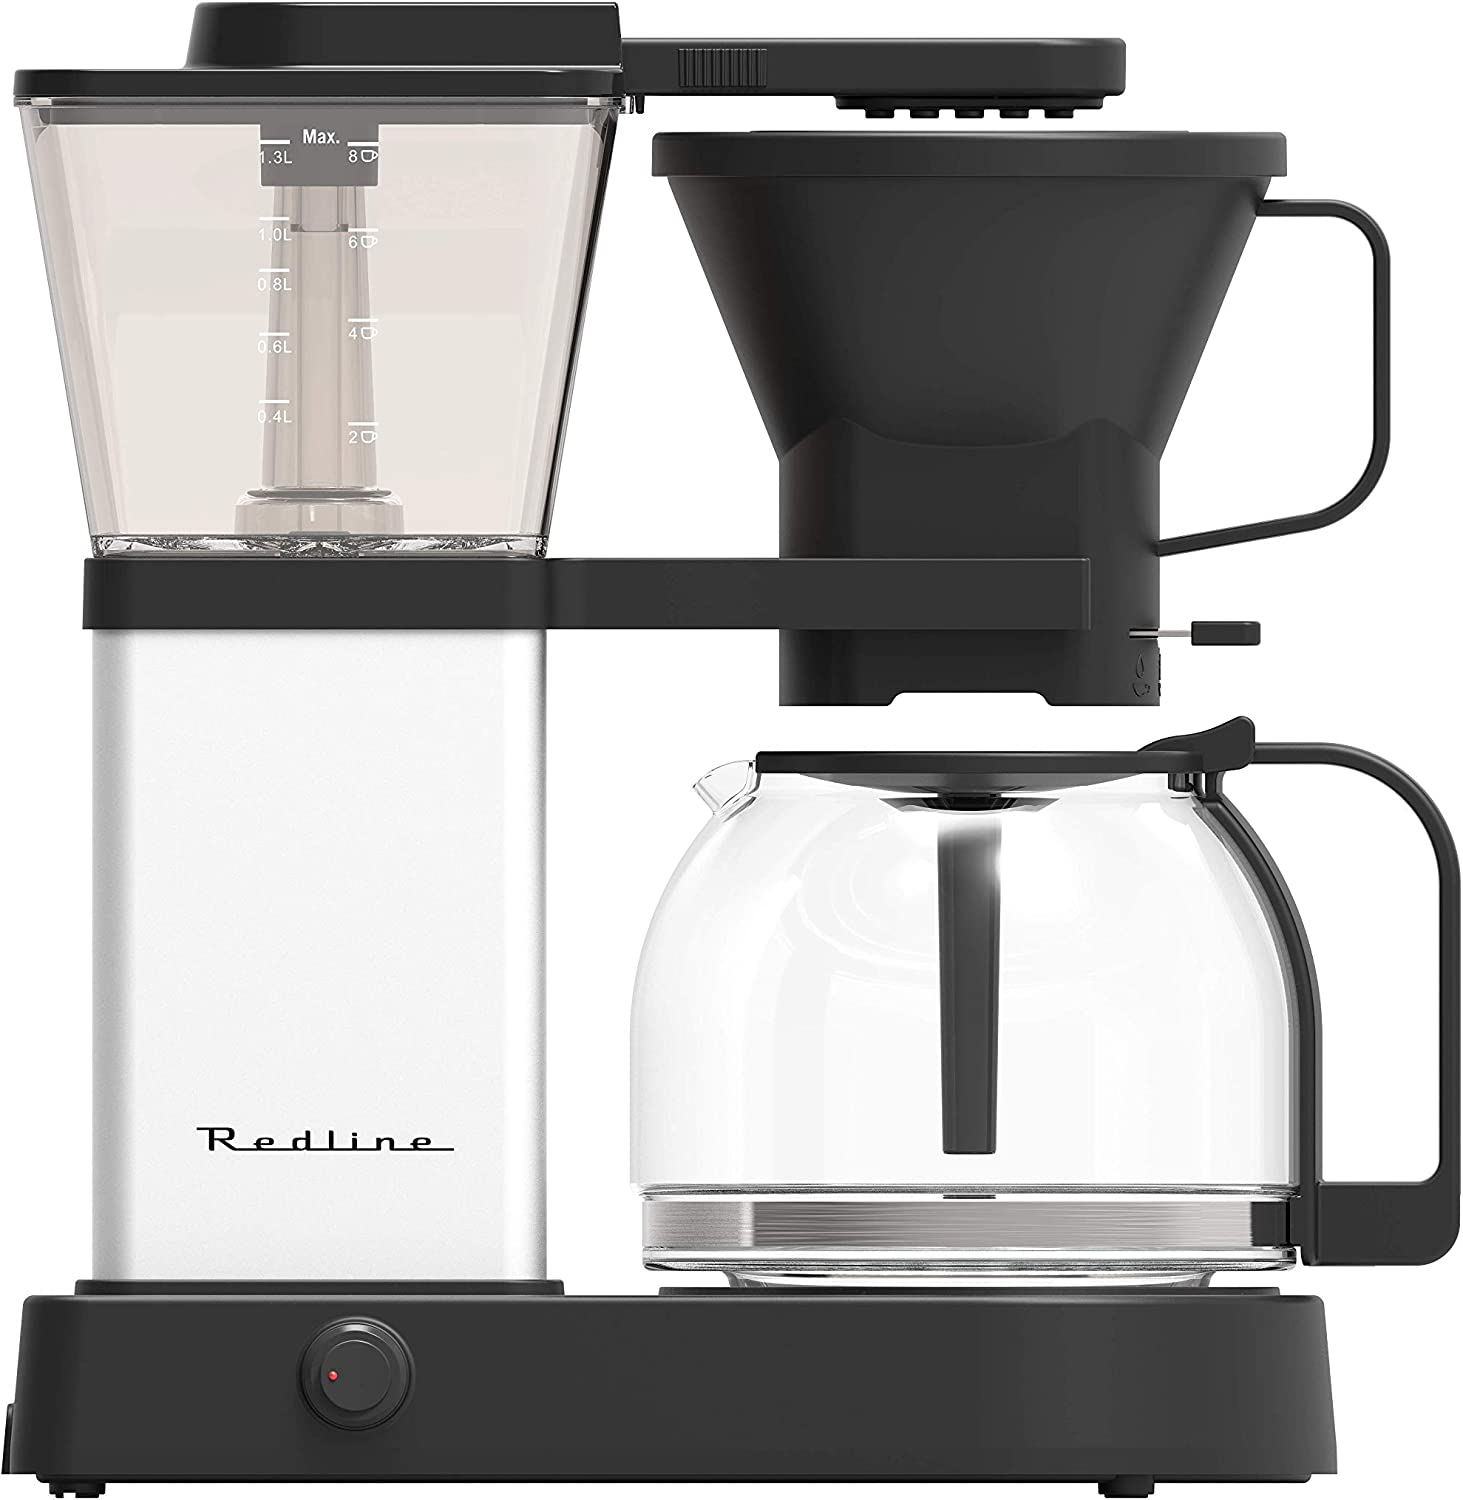 Redline MK1 8 Cup Coffee Brewer with Glass Carafe, Hot Plate and Pre-Infusion Mode Summer 2018 Refresh